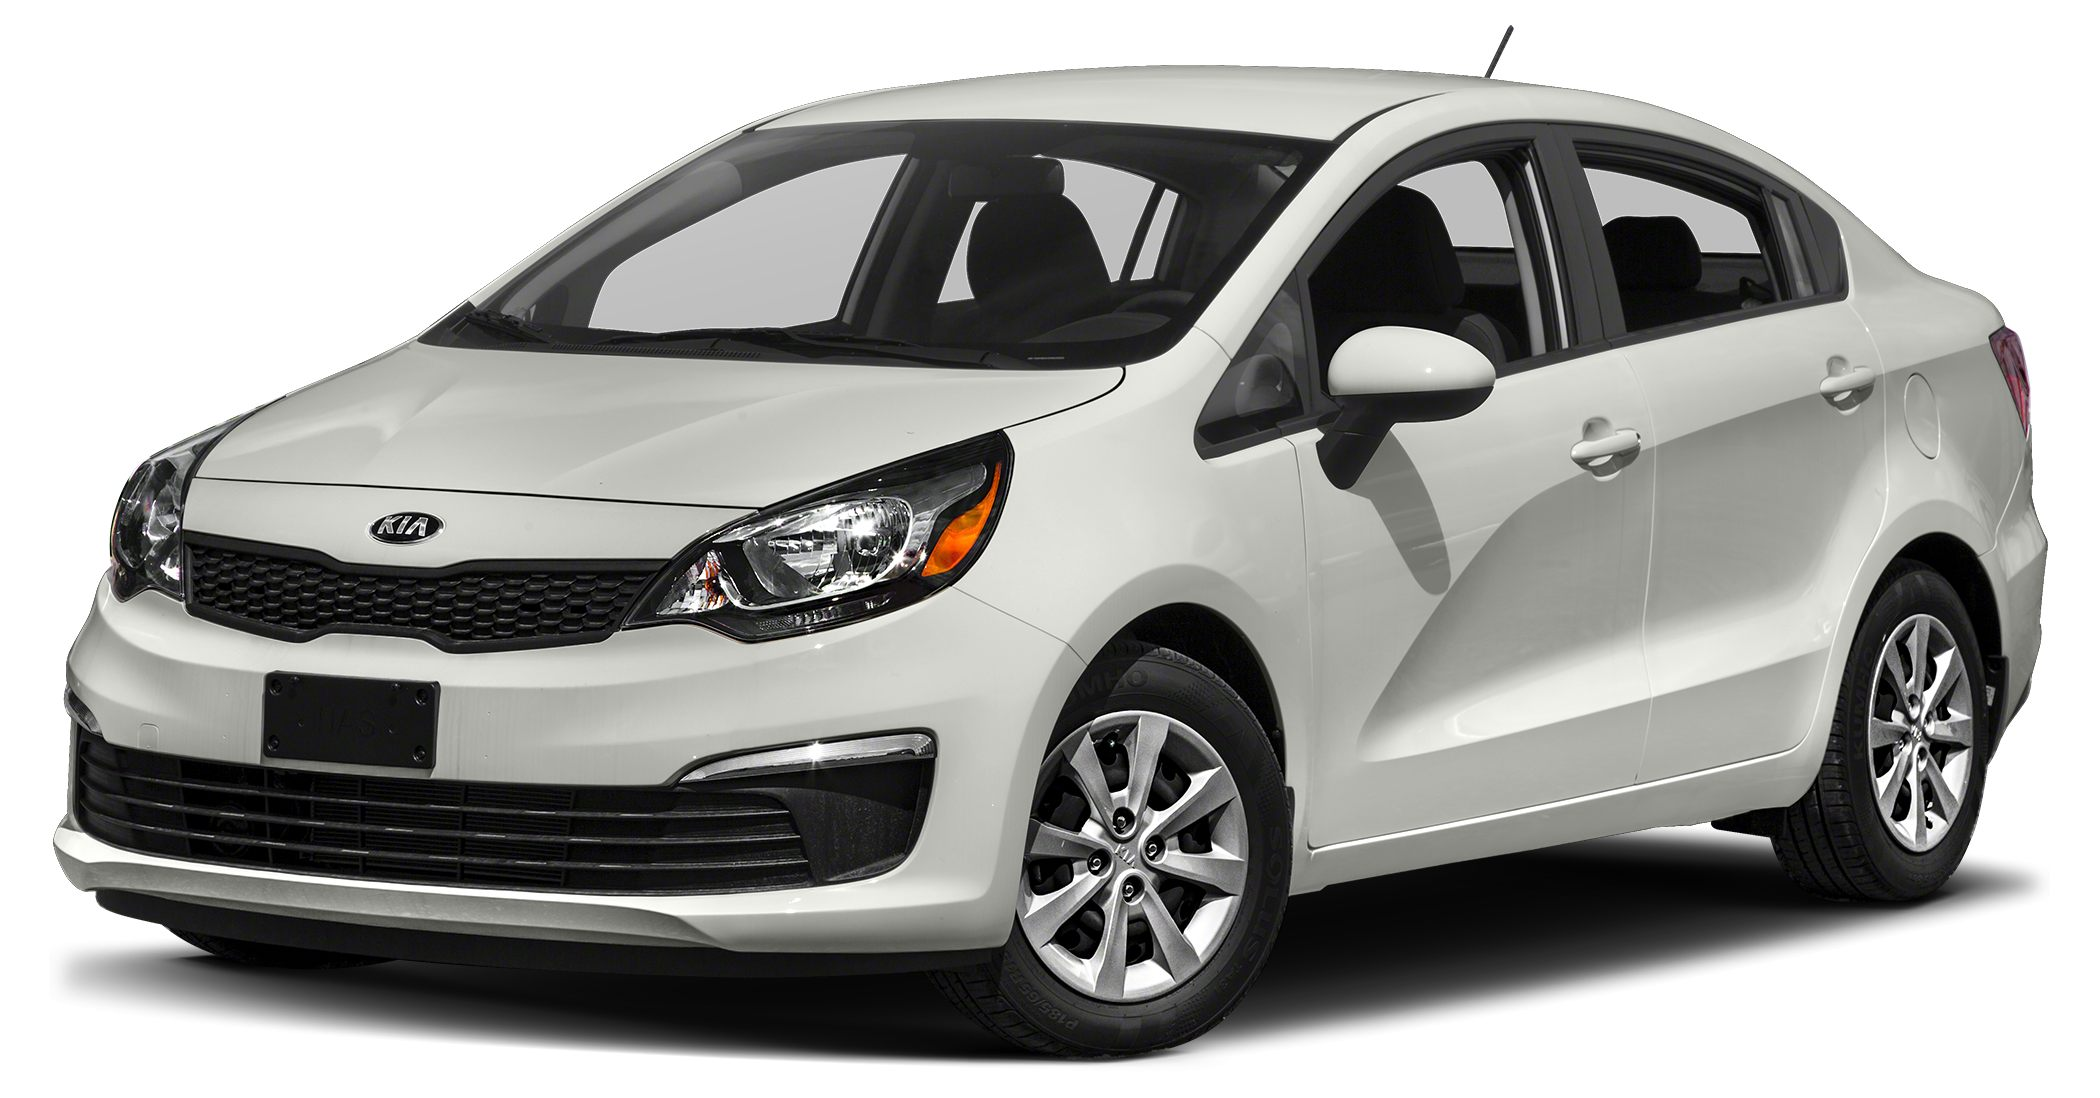 2017 Kia Rio LX The 2017 Kia Rio is engineered to provide performance without compromise With pre